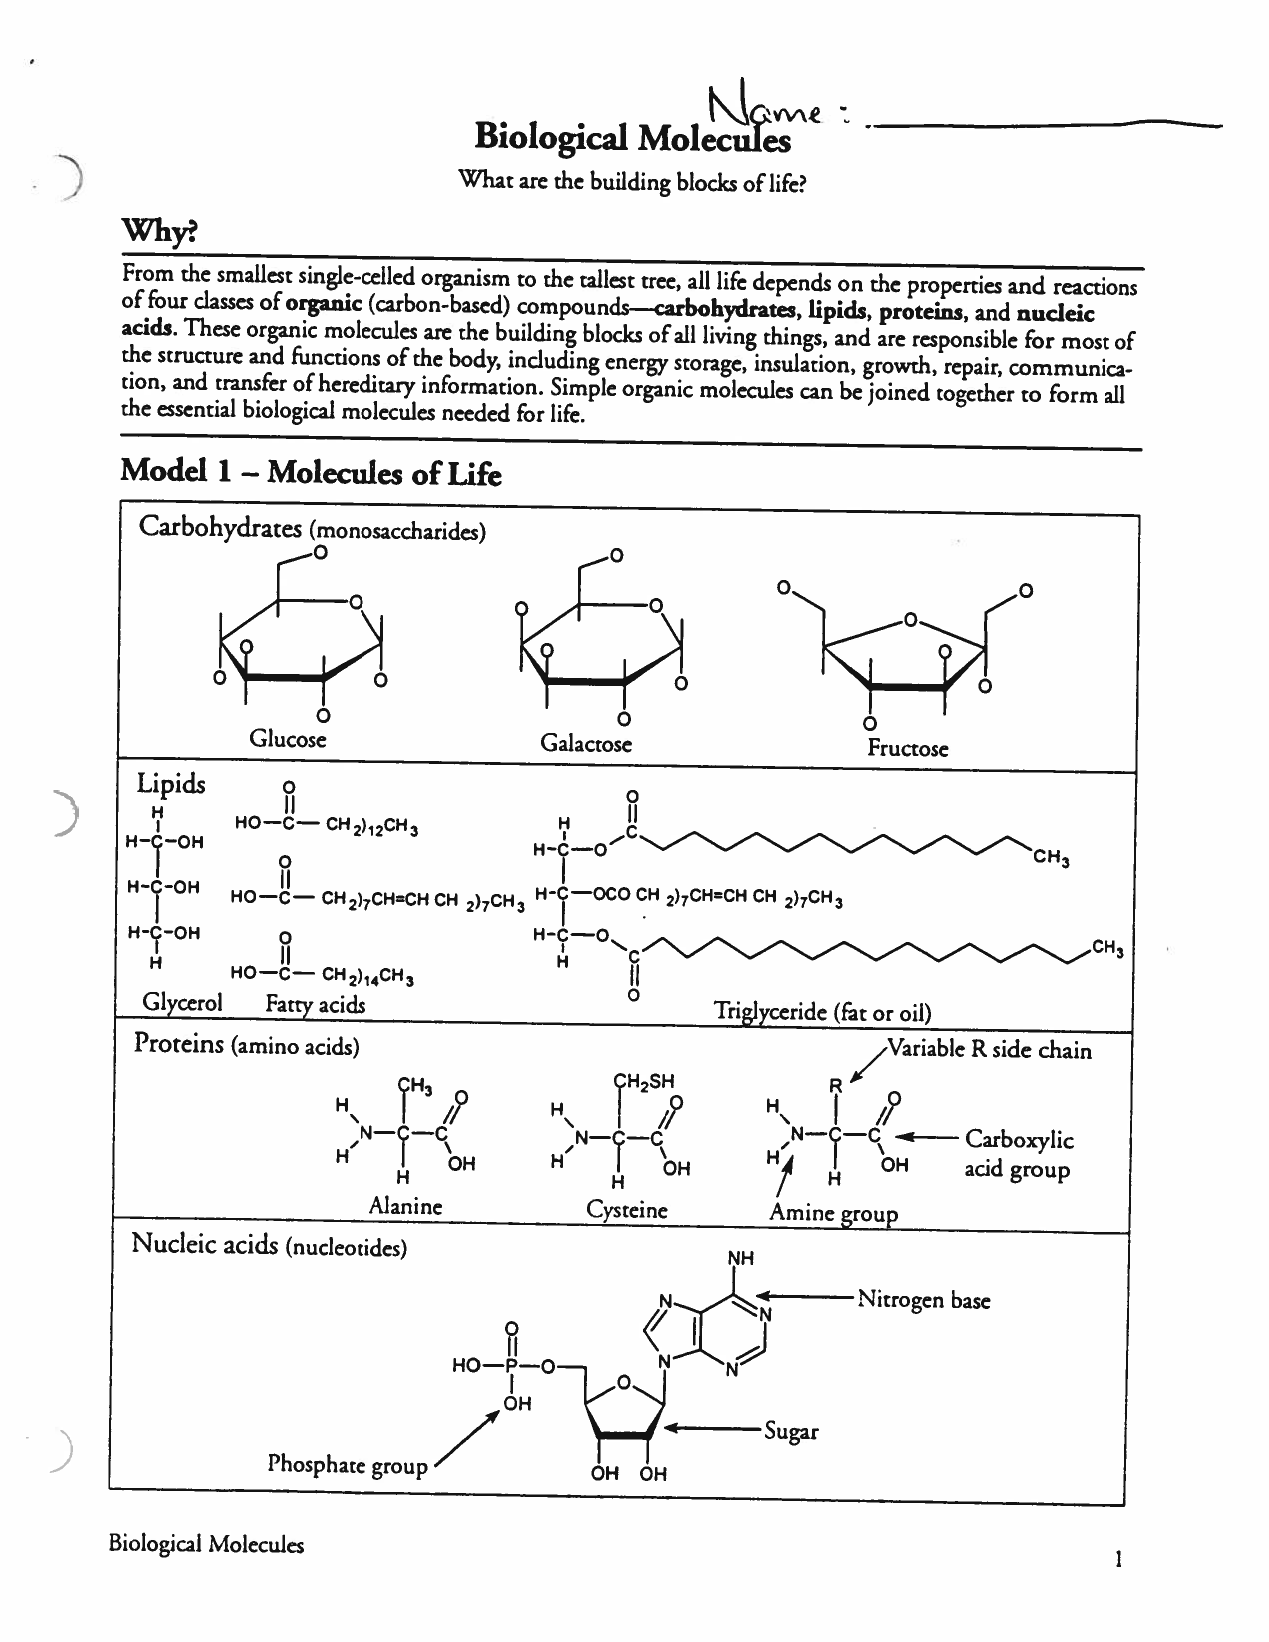 Biological Molecules What Are The Building Blocks Of Life ...